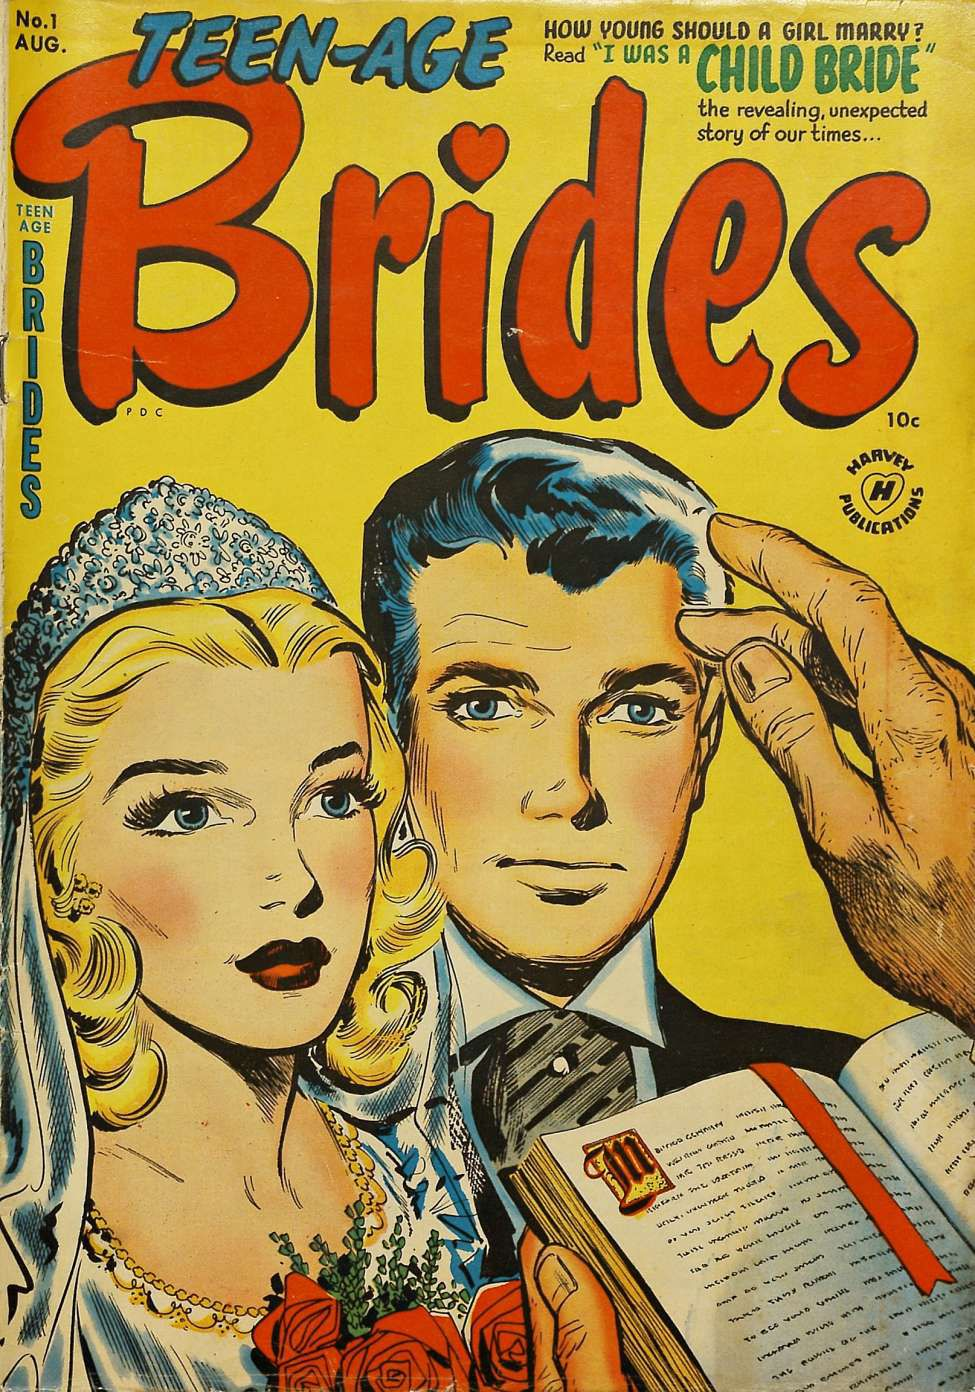 Image of the cover for Teen-Age Brides, issue 1.